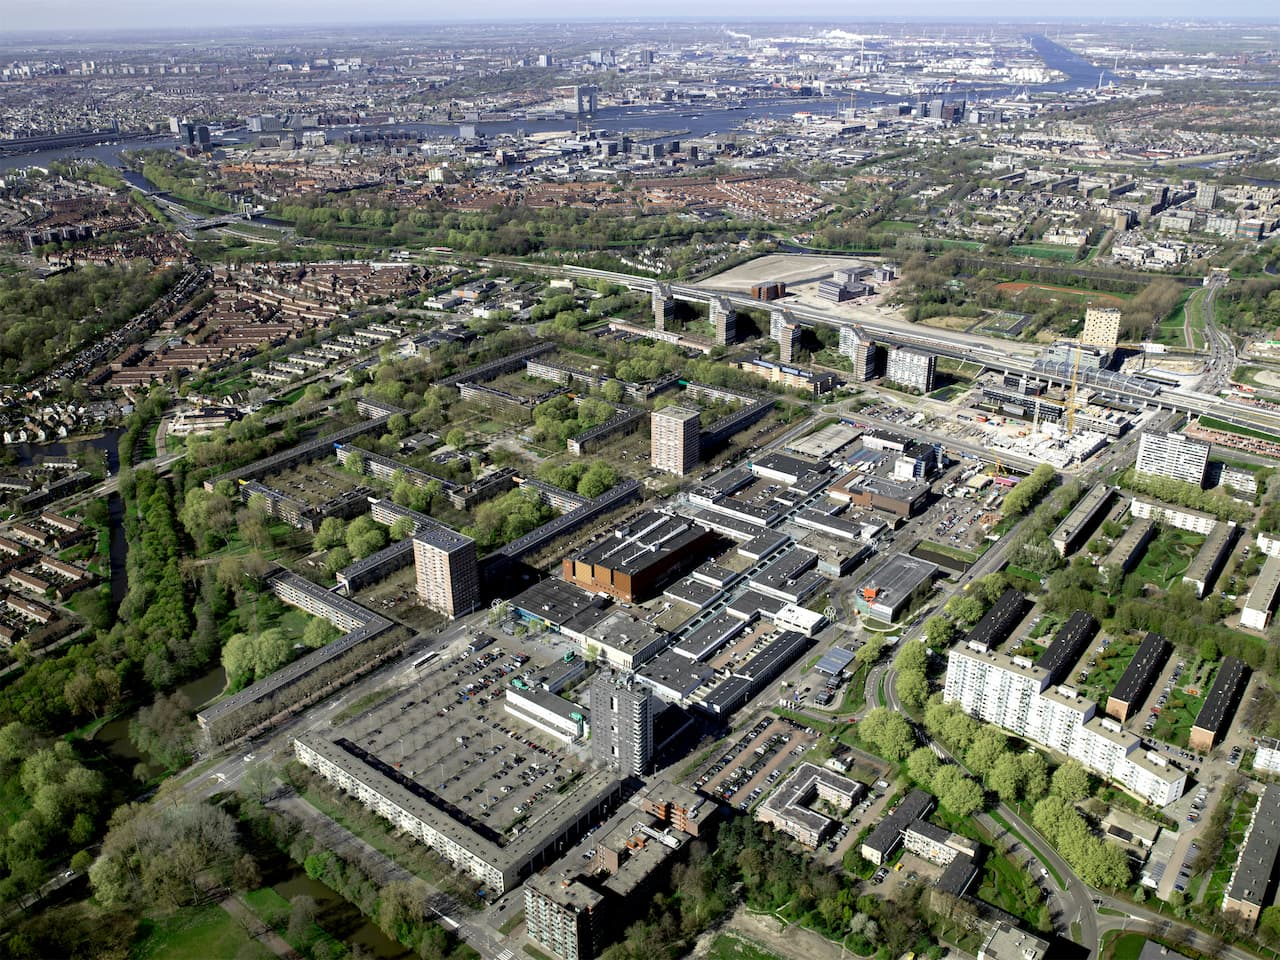 The City of Amsterdam invited Space&Matter to help develop a comprehensive and sustainable strategy for the redevelopment of Buikslotermeerplein. We involved diverse urban experts, stakeholders and local citizens to develop a strategy for the redevelopment of this shopping area in the North of Amsterdam. The masterplan and the process to deliver it has the purpose to transform a grey, monofunctional shopping mall area into a sustainable, vibrant and highly liveable city centre in Amsterdam's northern periphery.